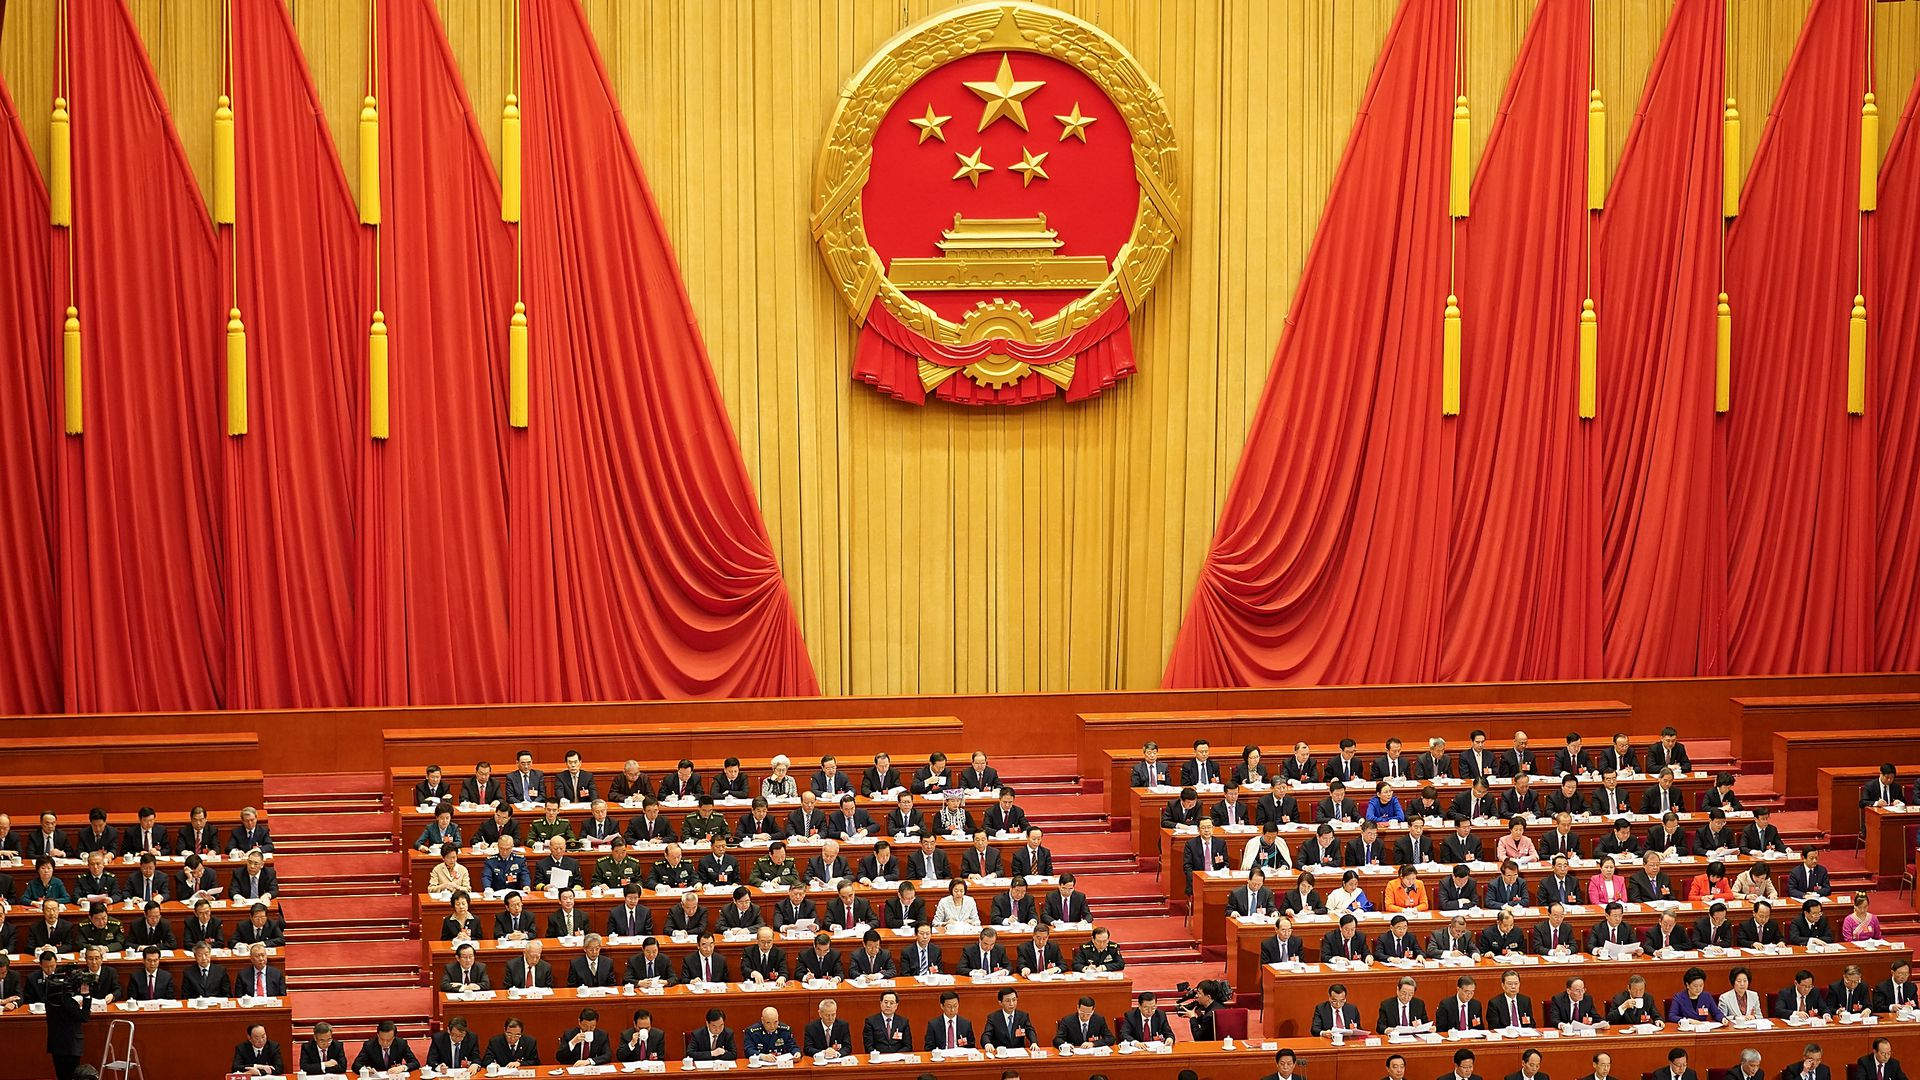 Chinese National Assembly